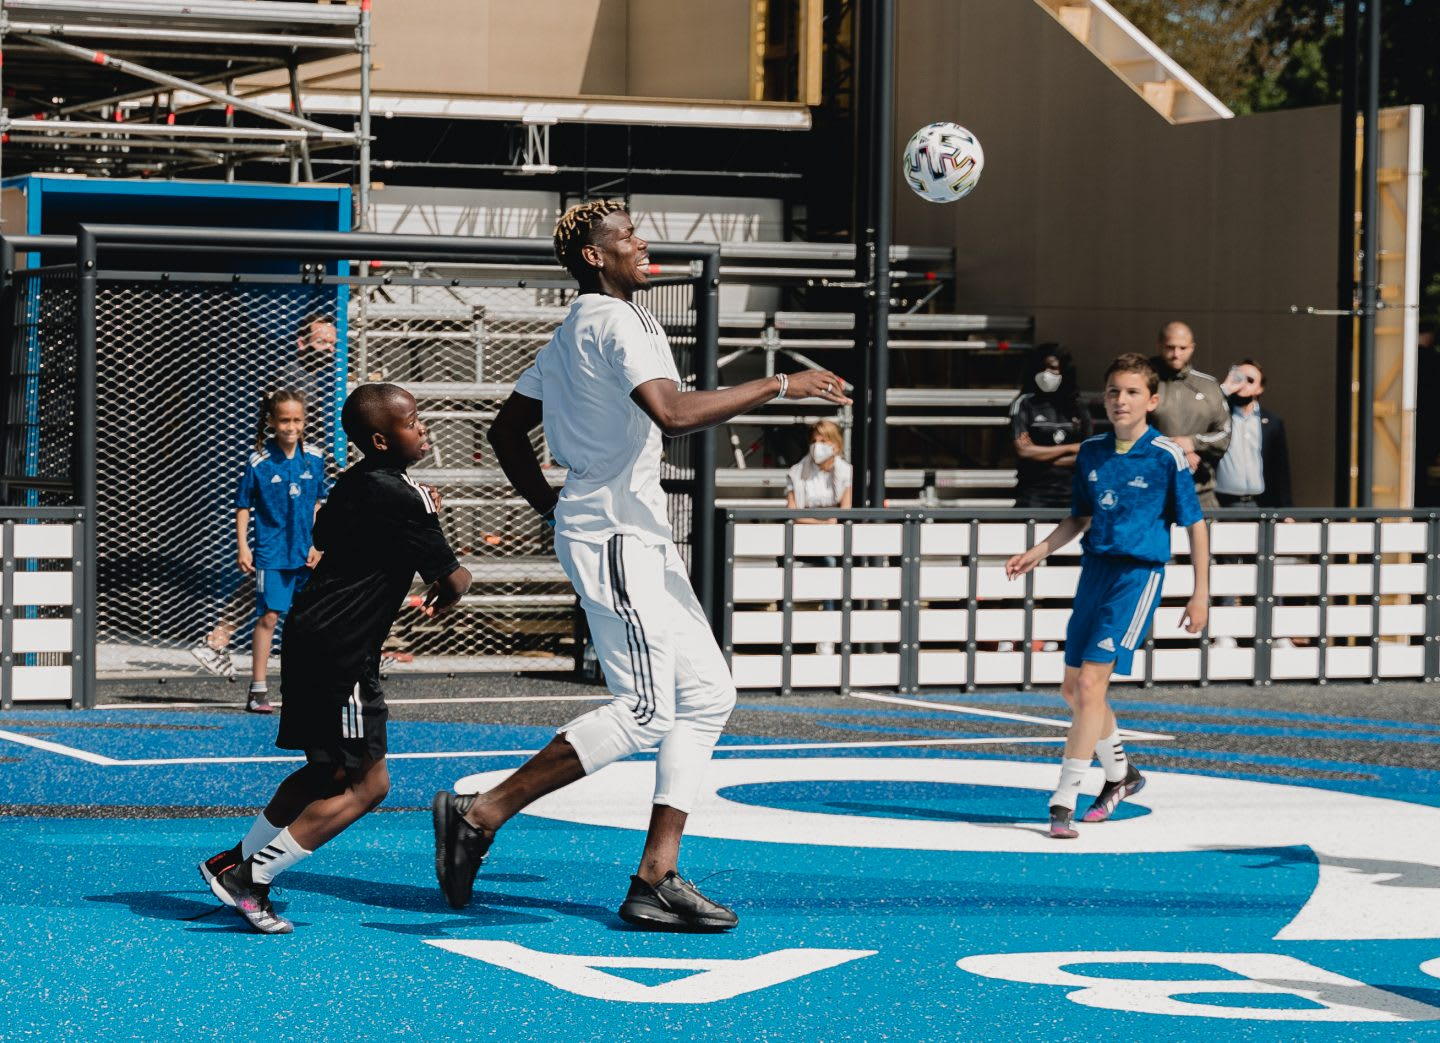 Pogba playing football with kids on his court. Football, france, kids, community, playing football